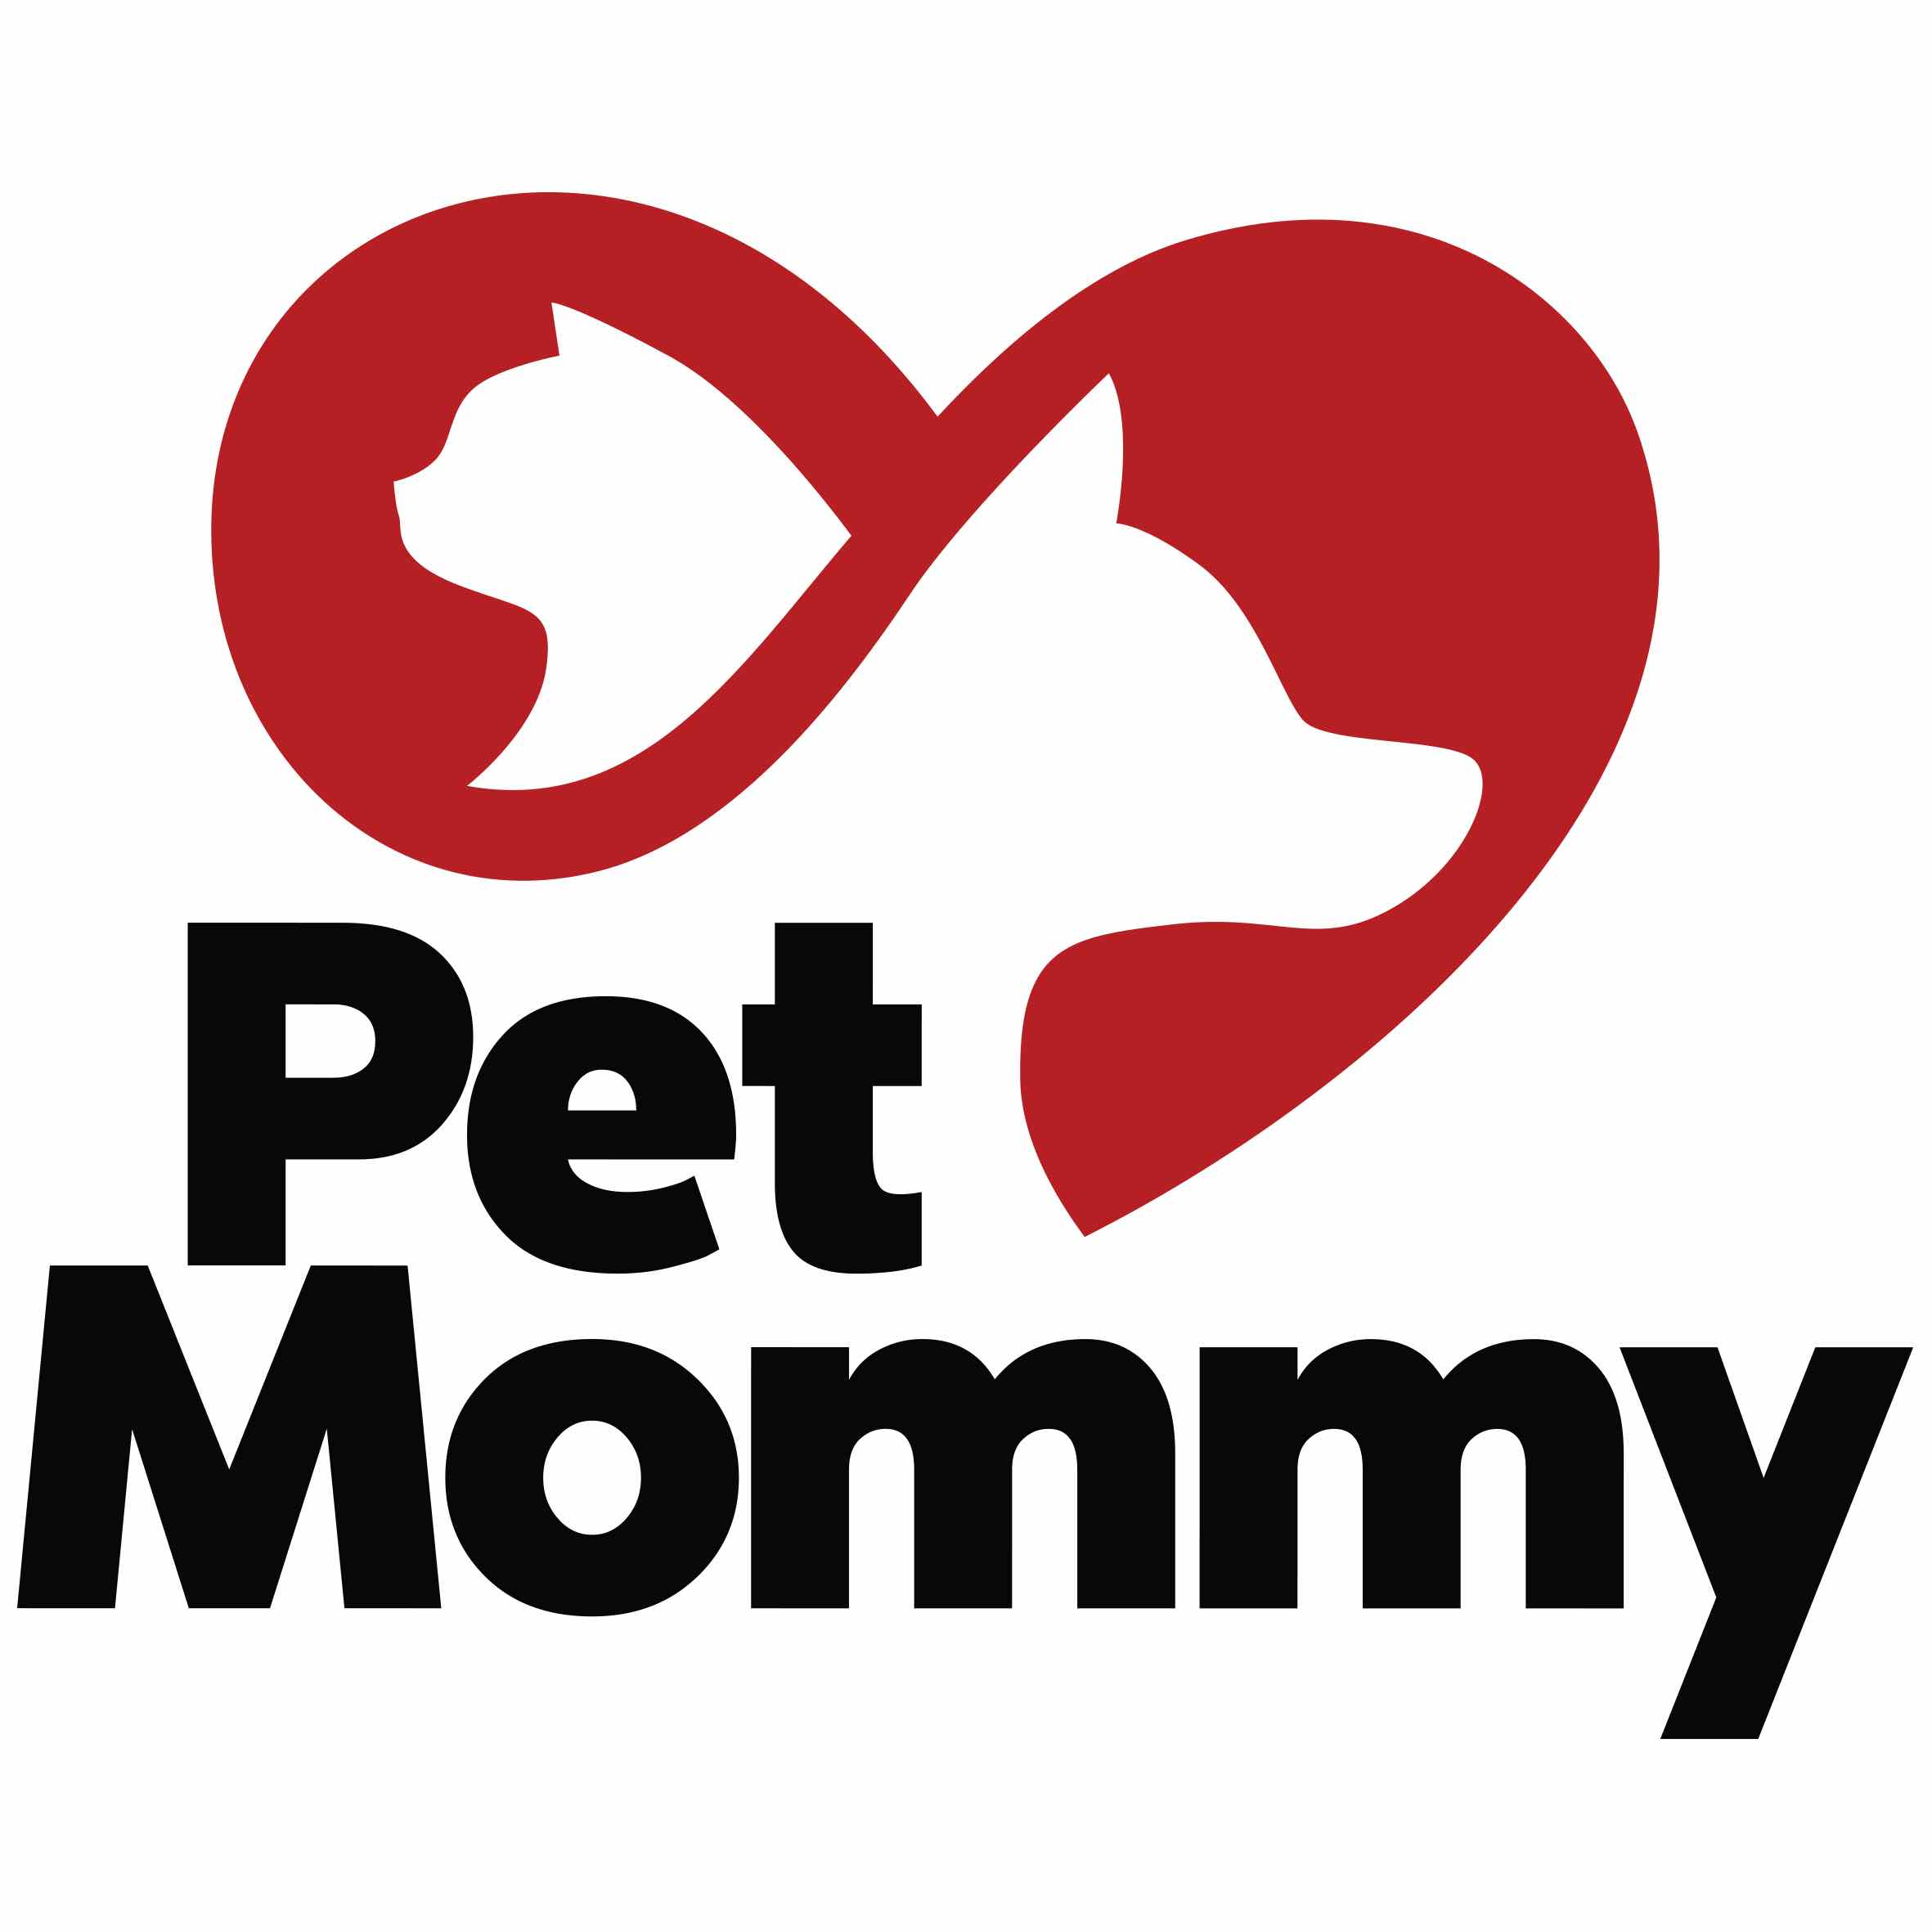 petmommy